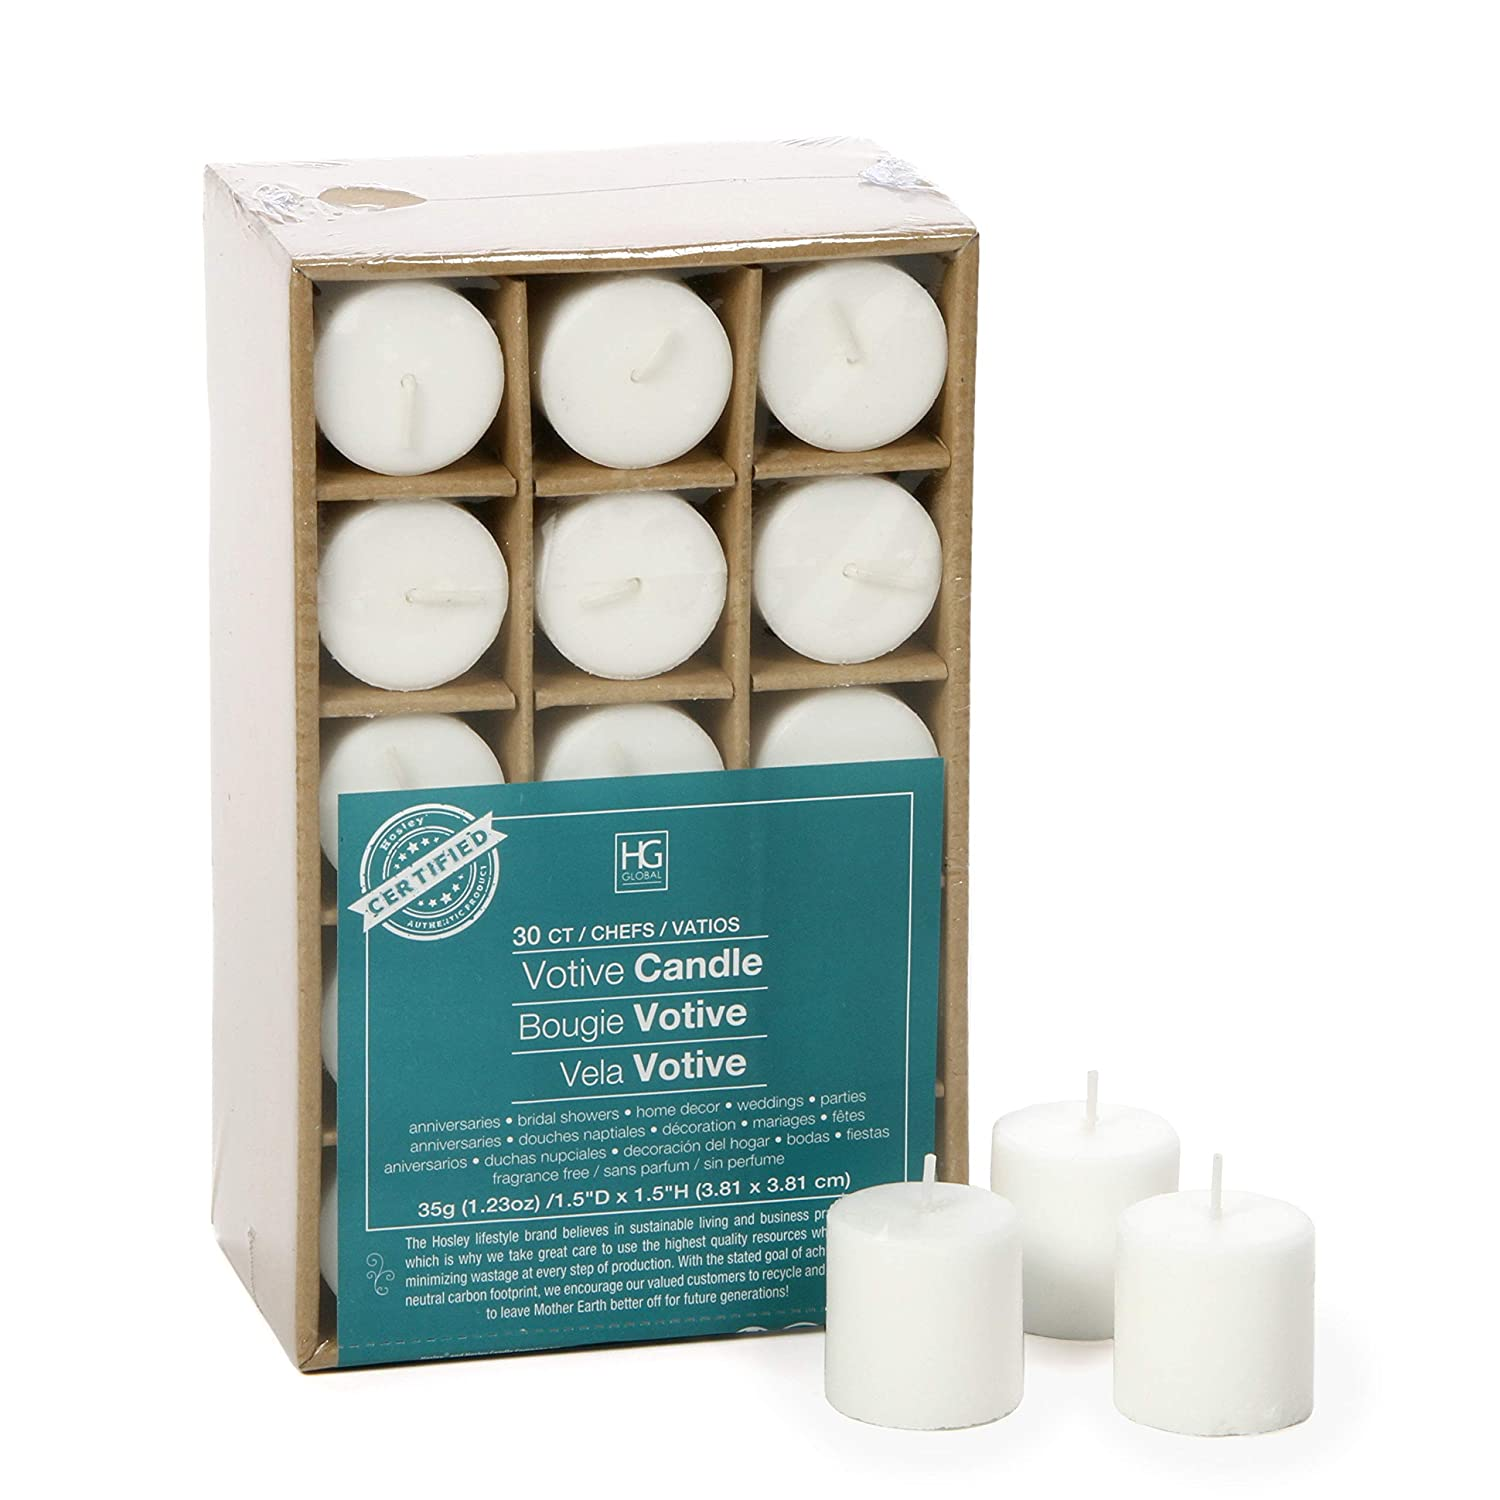 Hosleys Set of 30 White Unscented Votive Candles. up to 10 Hour Burn .Bulk Buy. Wax Blend. Ideal for Wedding, Spa, Aromatherapy, Party, Everyday Use O2 HG GLOBAL